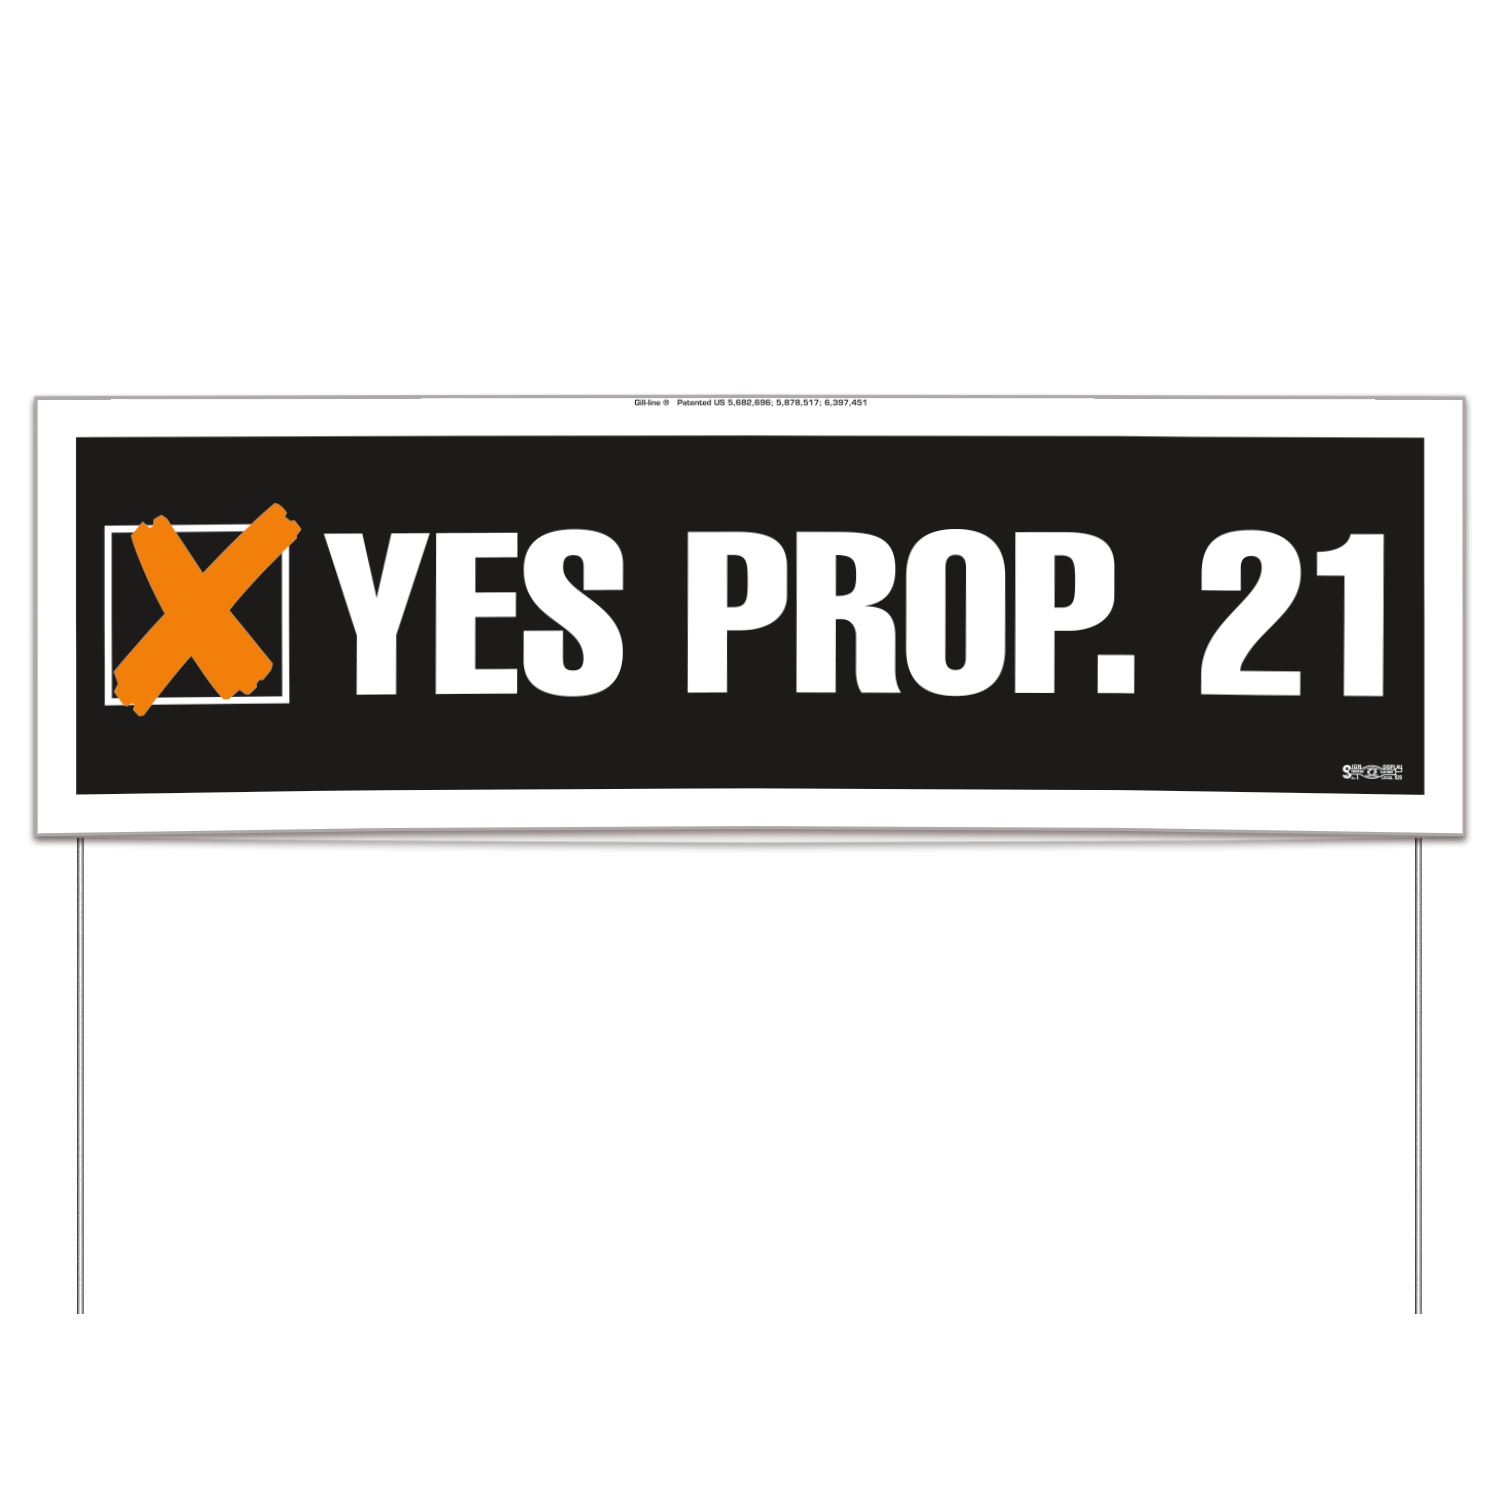 https://www.sswprinting.com/images/products_gallery_images/19411_Yes-on-Prop-21_hi-res.png